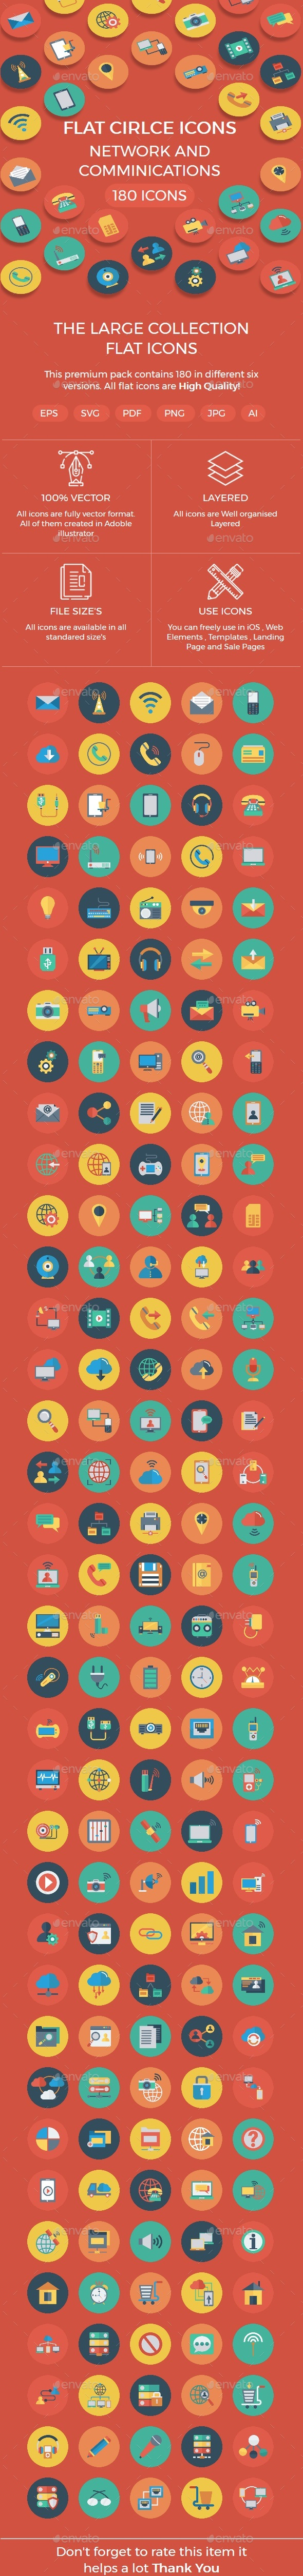 Network and Comminications Flat icon - Icons